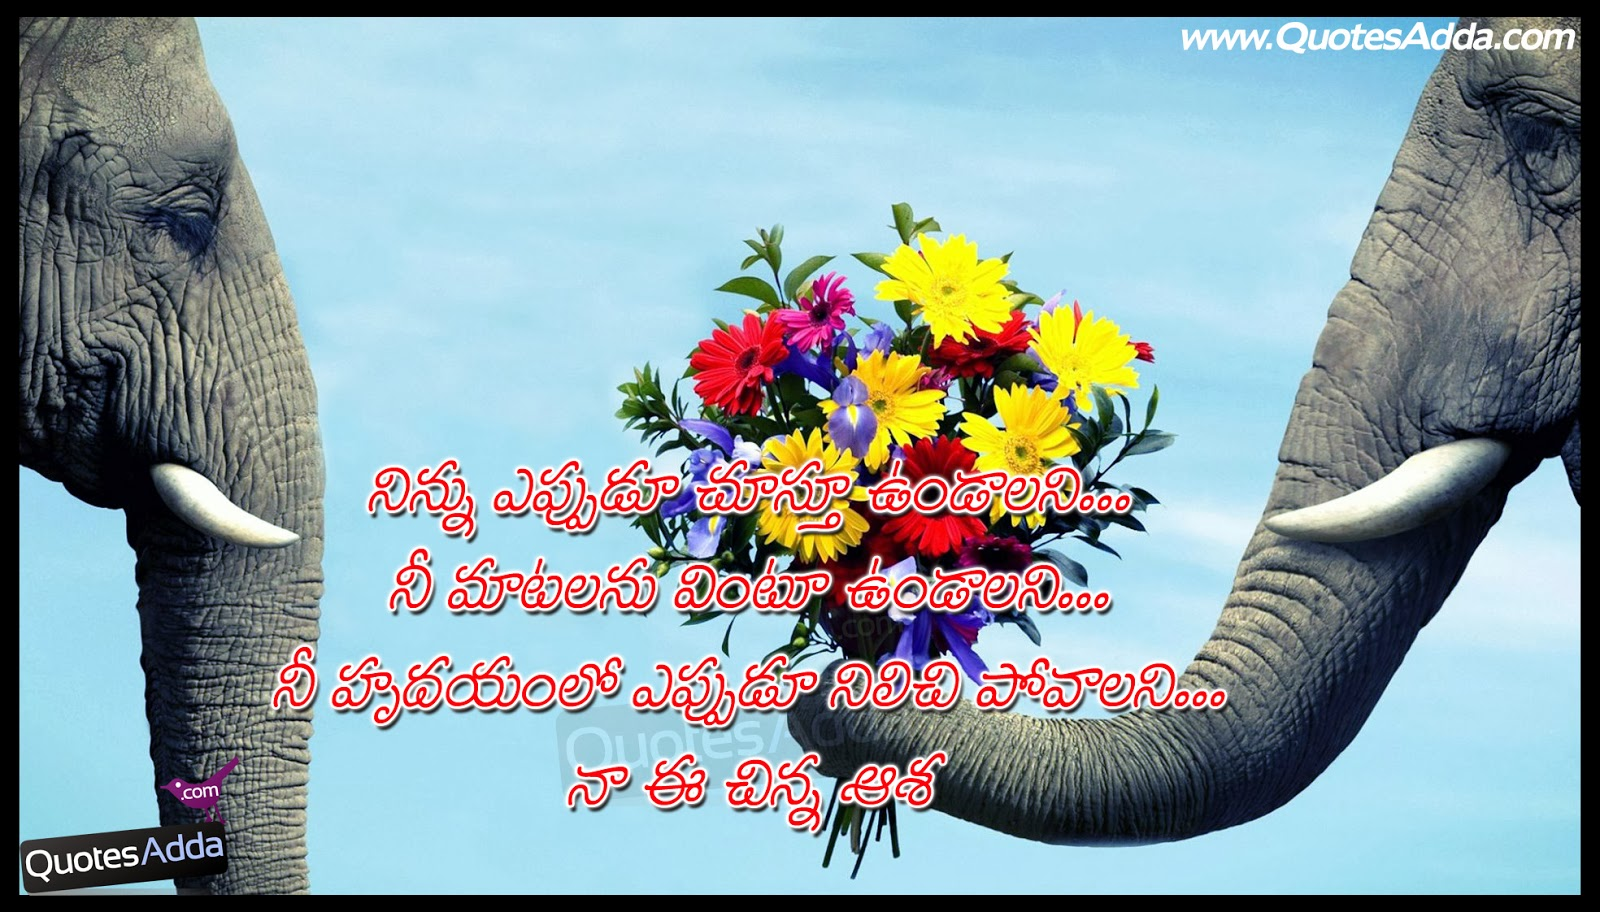 telugu love proposal quotes with wallpapers quotesadda